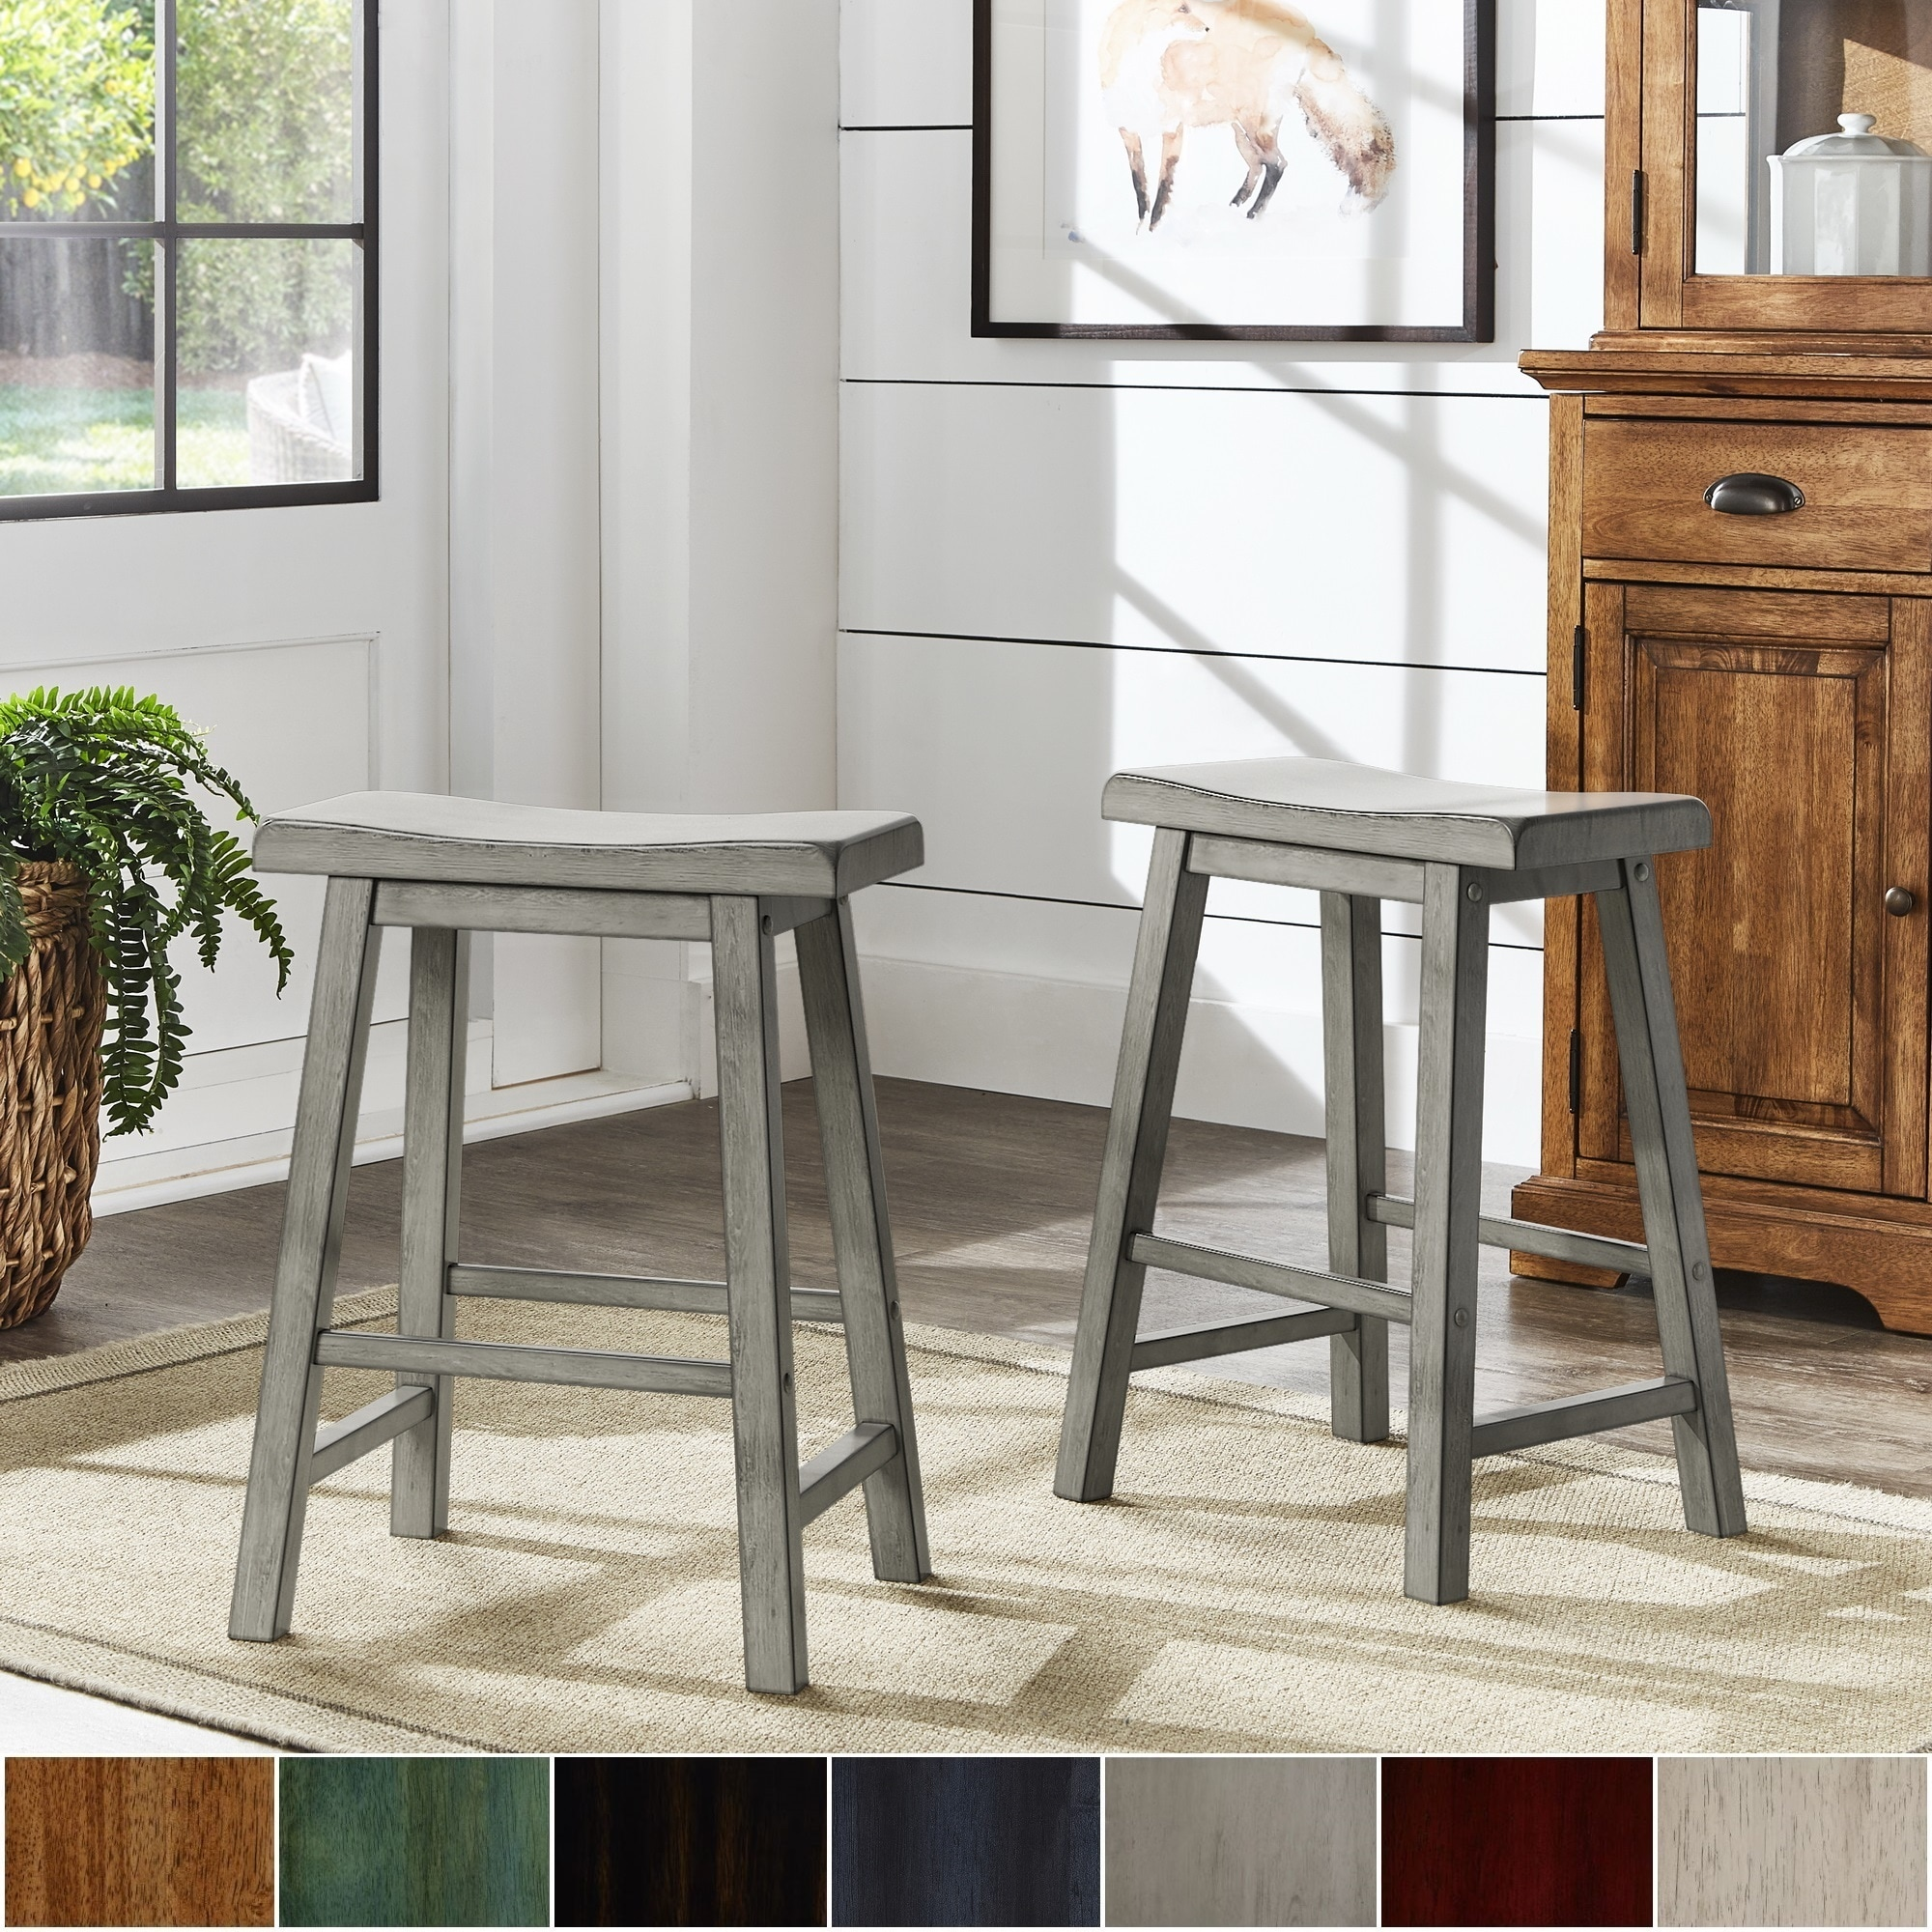 Salvador Ii Saddle Seat 24 Inch Counter Height Backless Stools Set